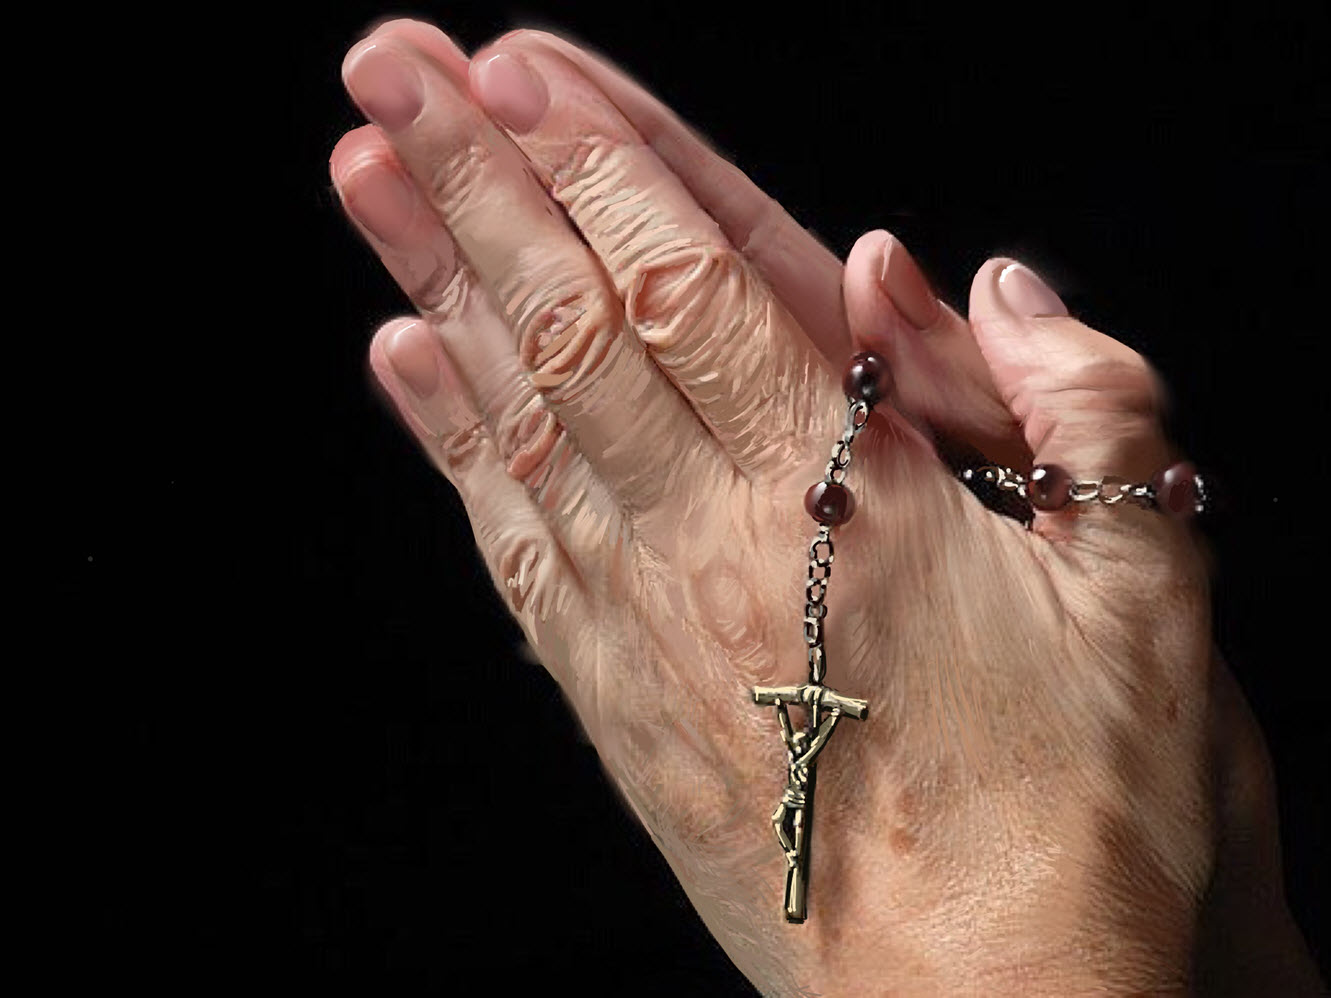 Elderly Hands Praying with Rosary Beads